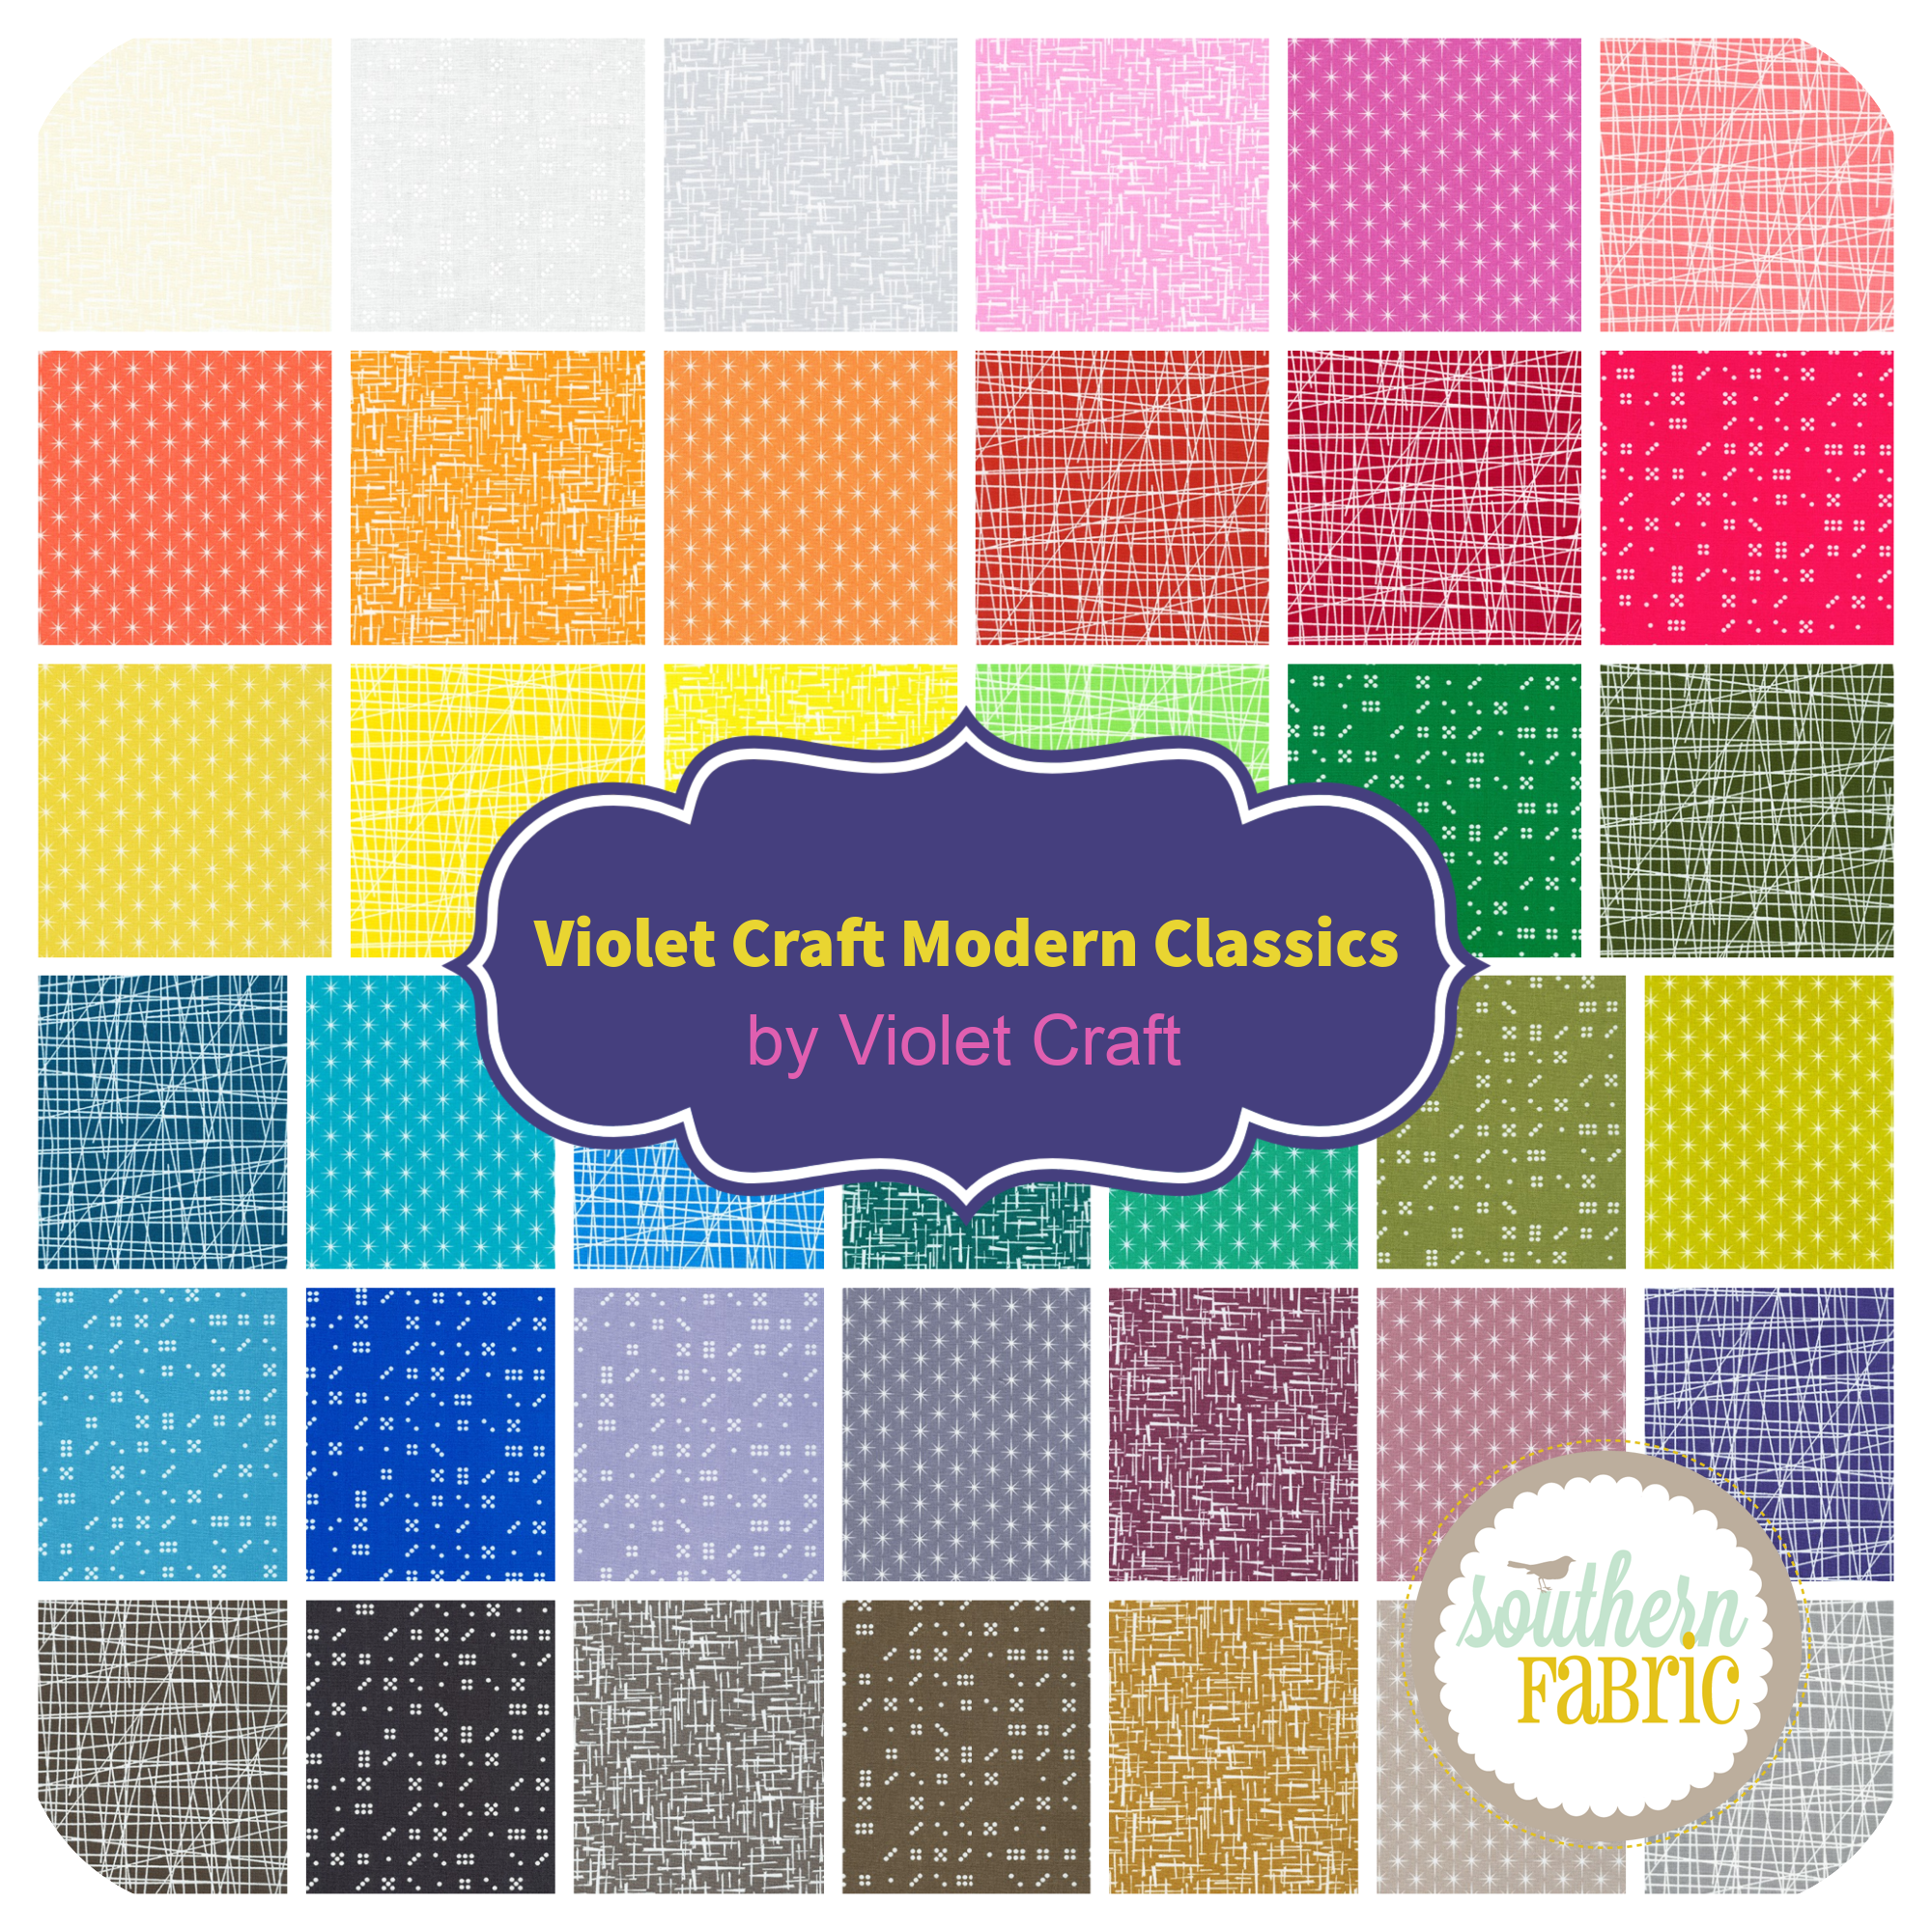 Violet Craft Modern Classics by Violet Craft